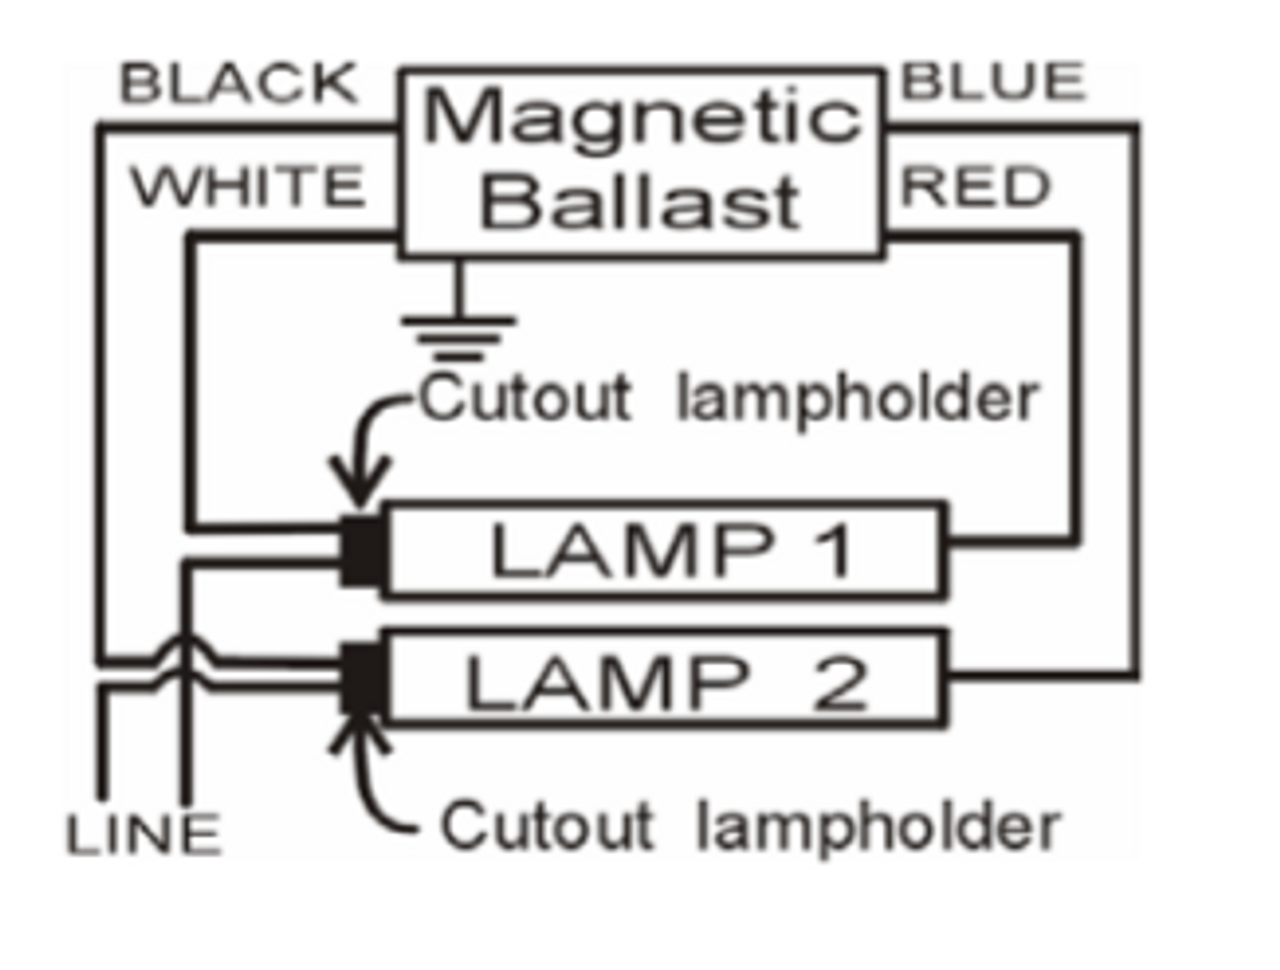 MB2X96/120IS Sylvania 48018 Magnetic Fluorescent Ballast on f96t12 cw, f96t12 bulb wiring diagram, f96t12 electronic ballast, fluorescent light wiring diagram,